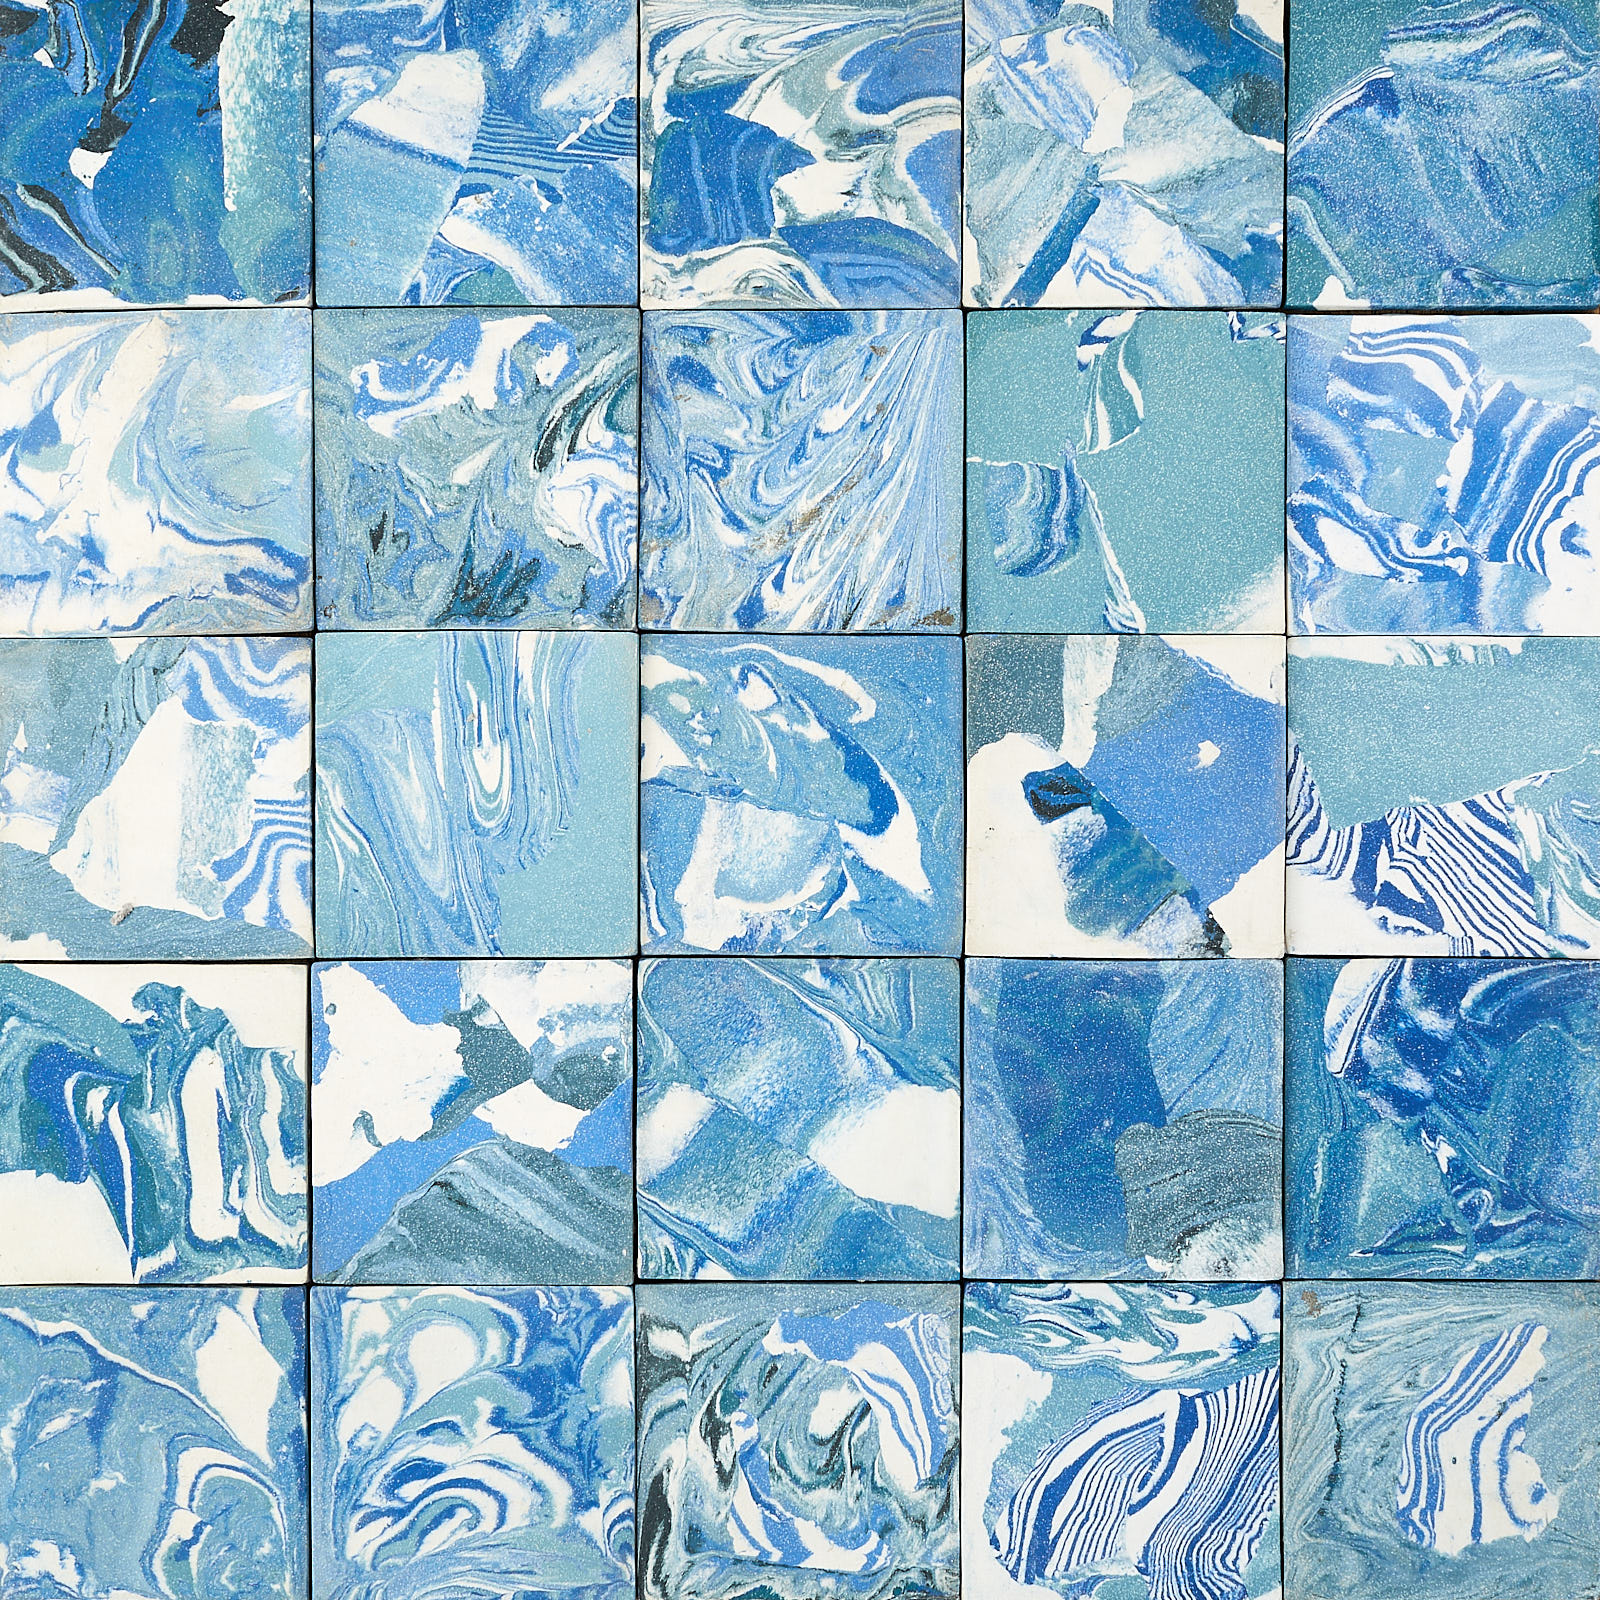 Handmade Ceramic Tiles By Granby Workshop Lassco England S Prime Resource For Architectural Antiques Salvage Curiosities